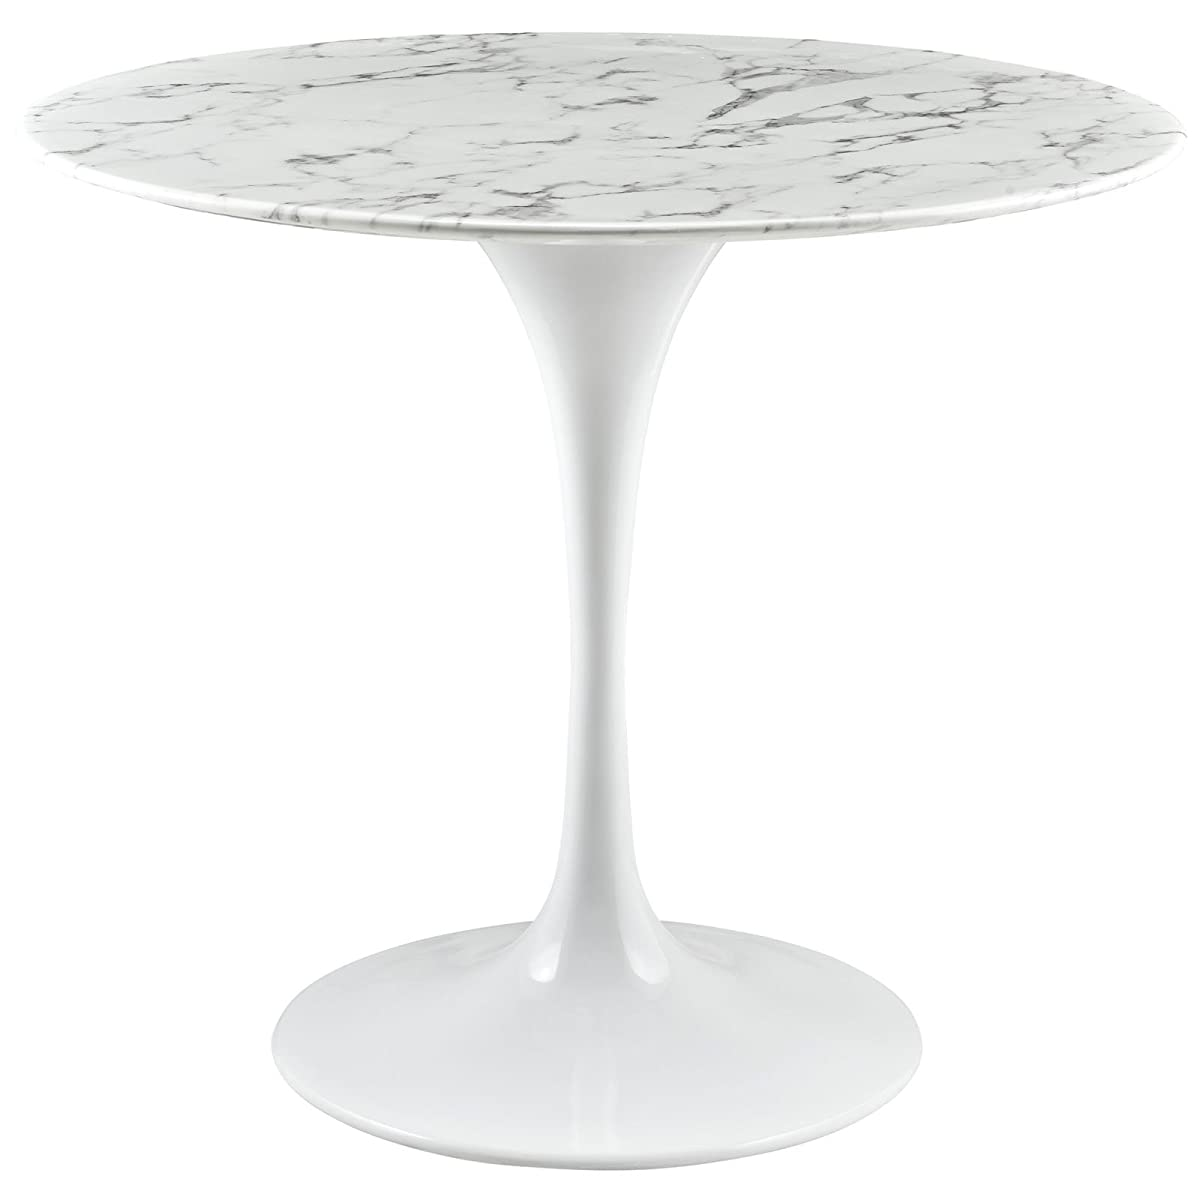 "Modway Lippa 36"" Artificial Marble Dining Table in White"